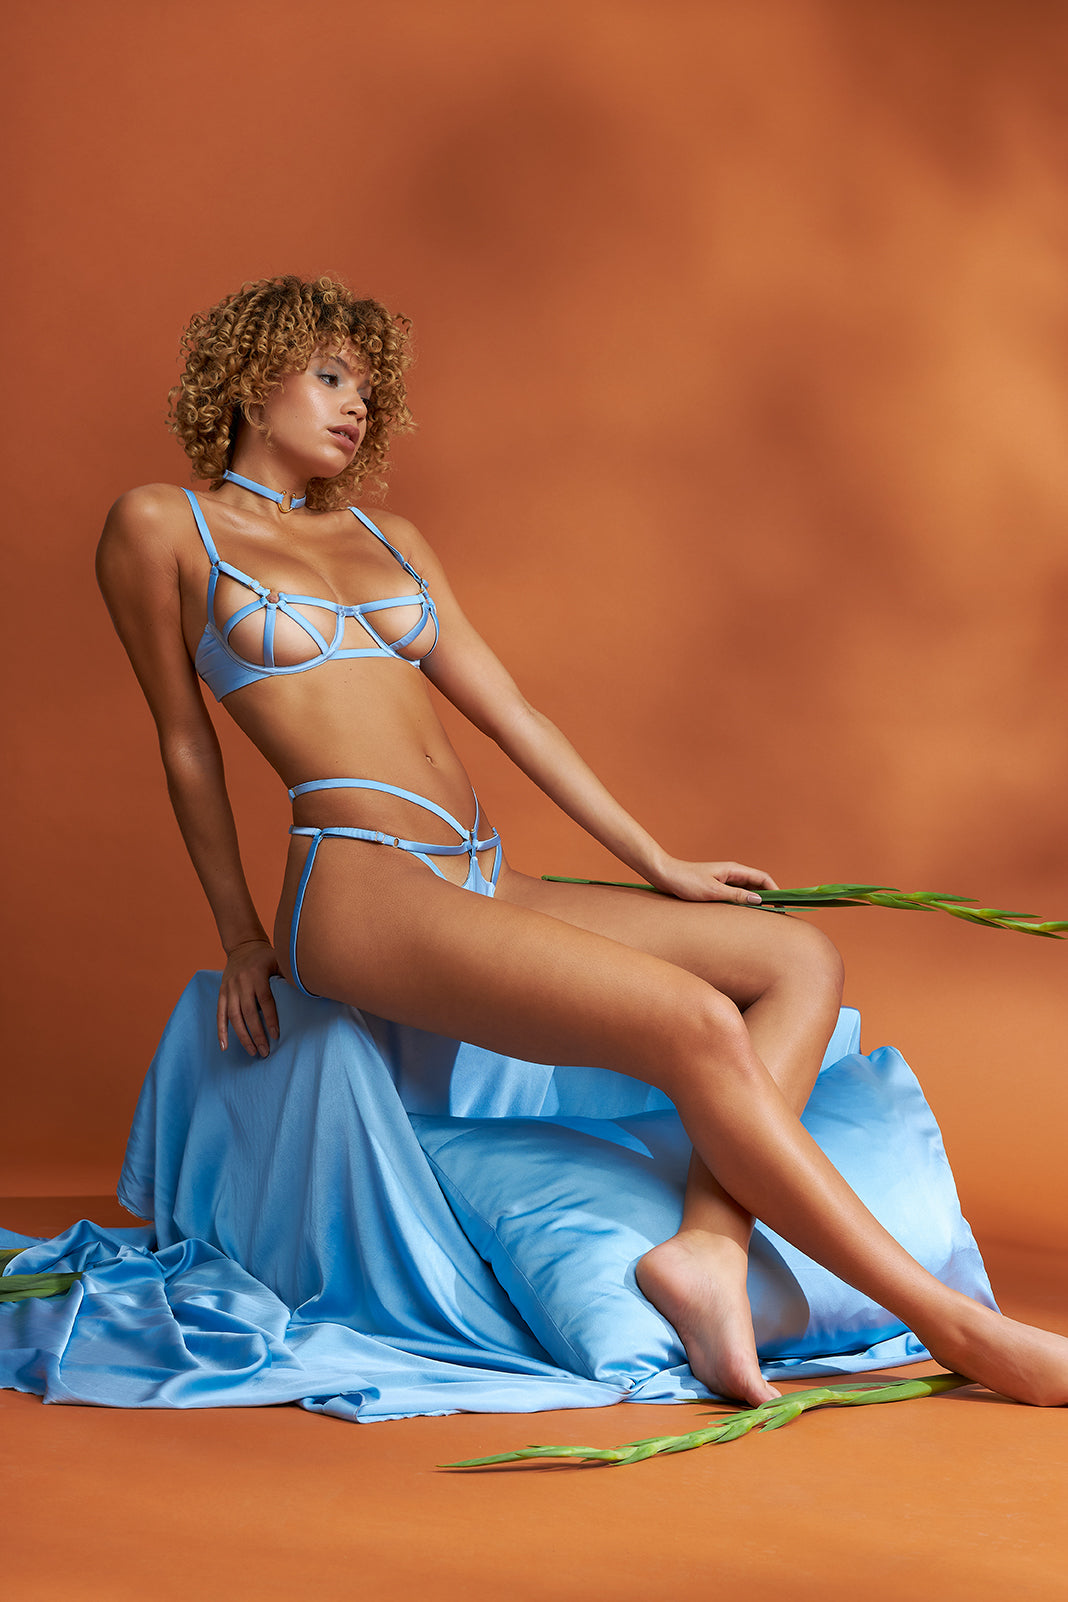 Model wears a cage bra and ouvert knicker crafted from soft blue peace silk